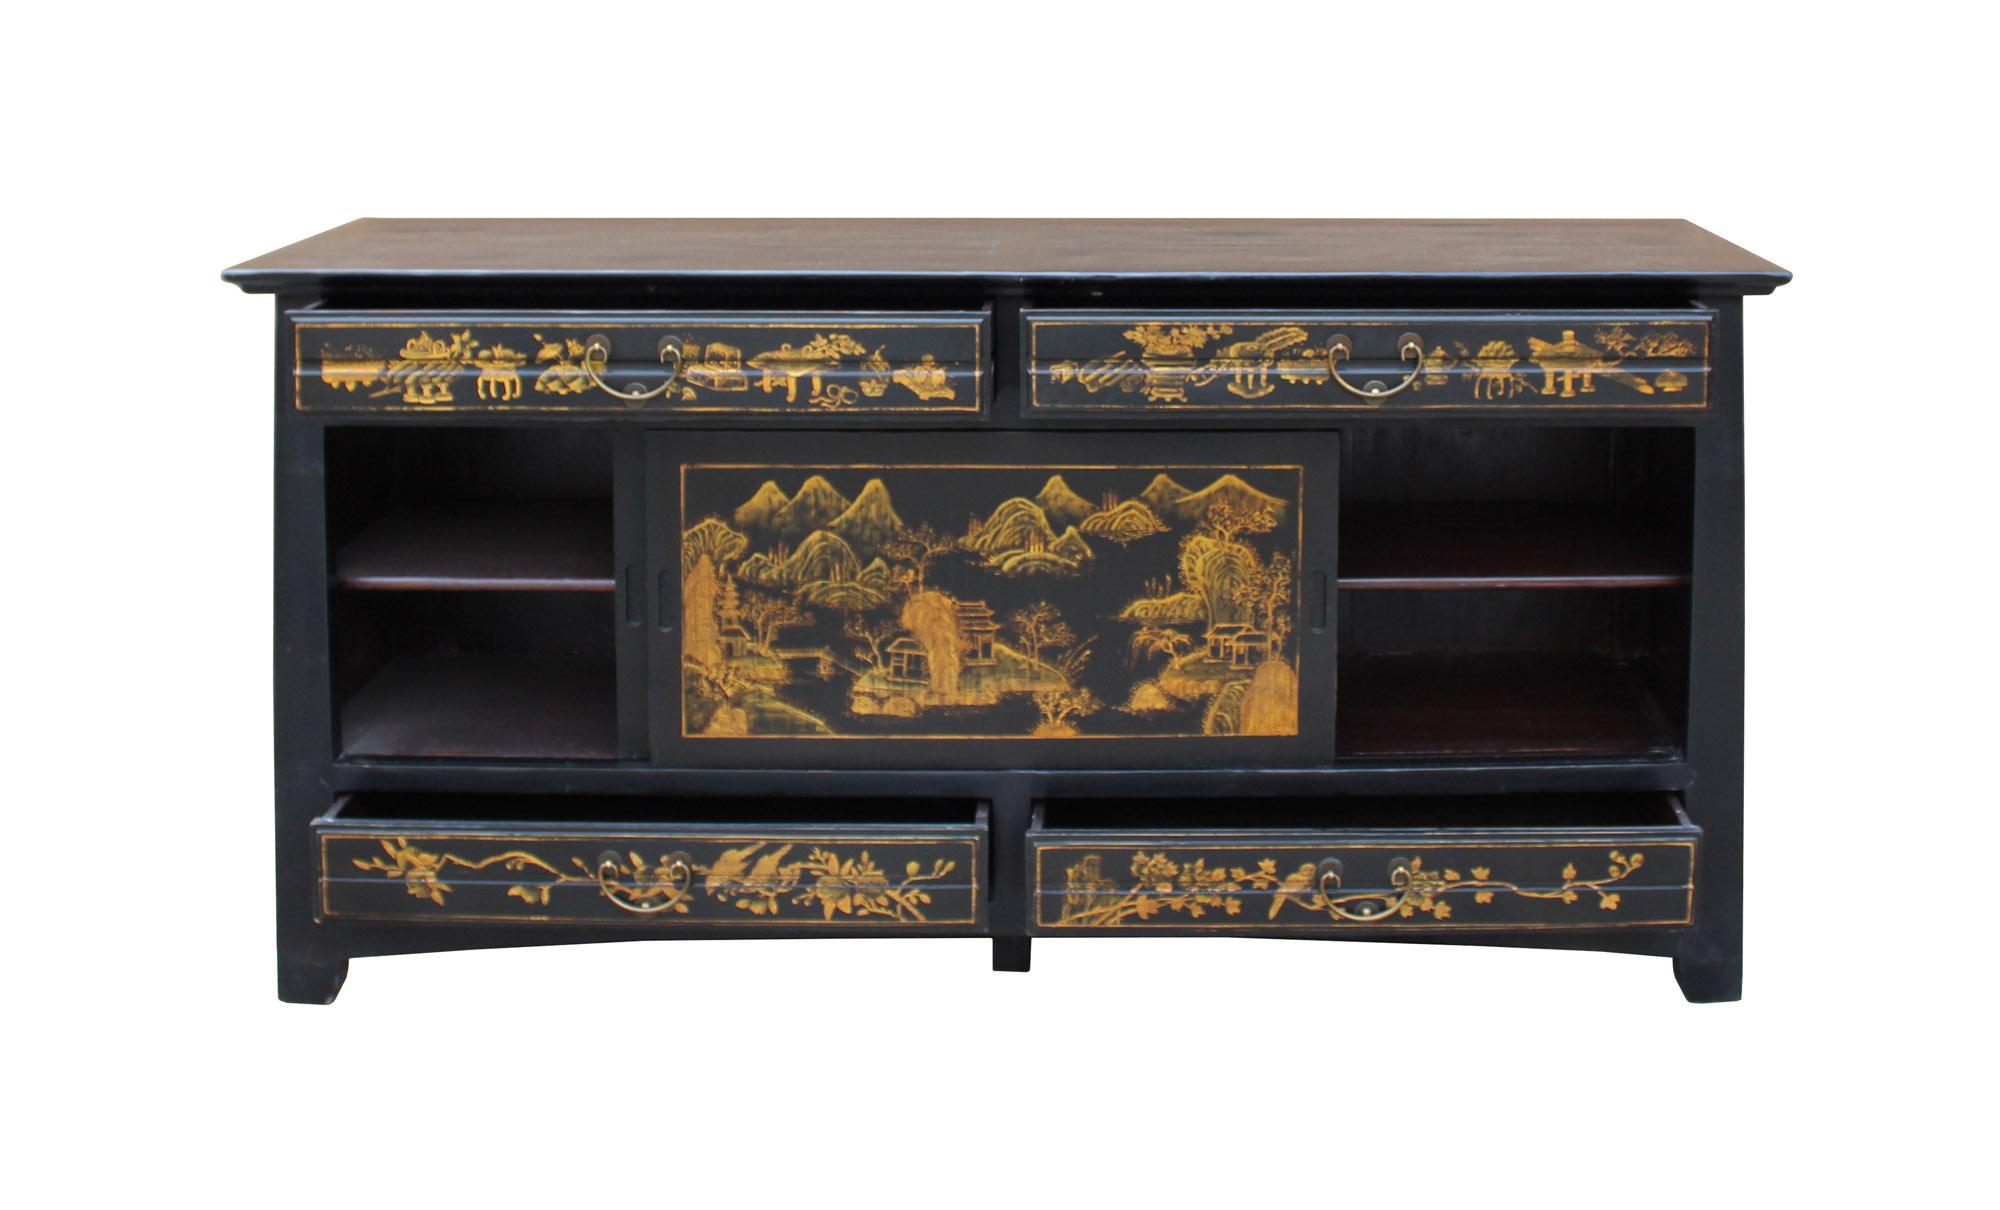 Black Chinese Fujian Golden Graphic Sideboard High Credenza Console Table TV  Cabinet For Sale   Image